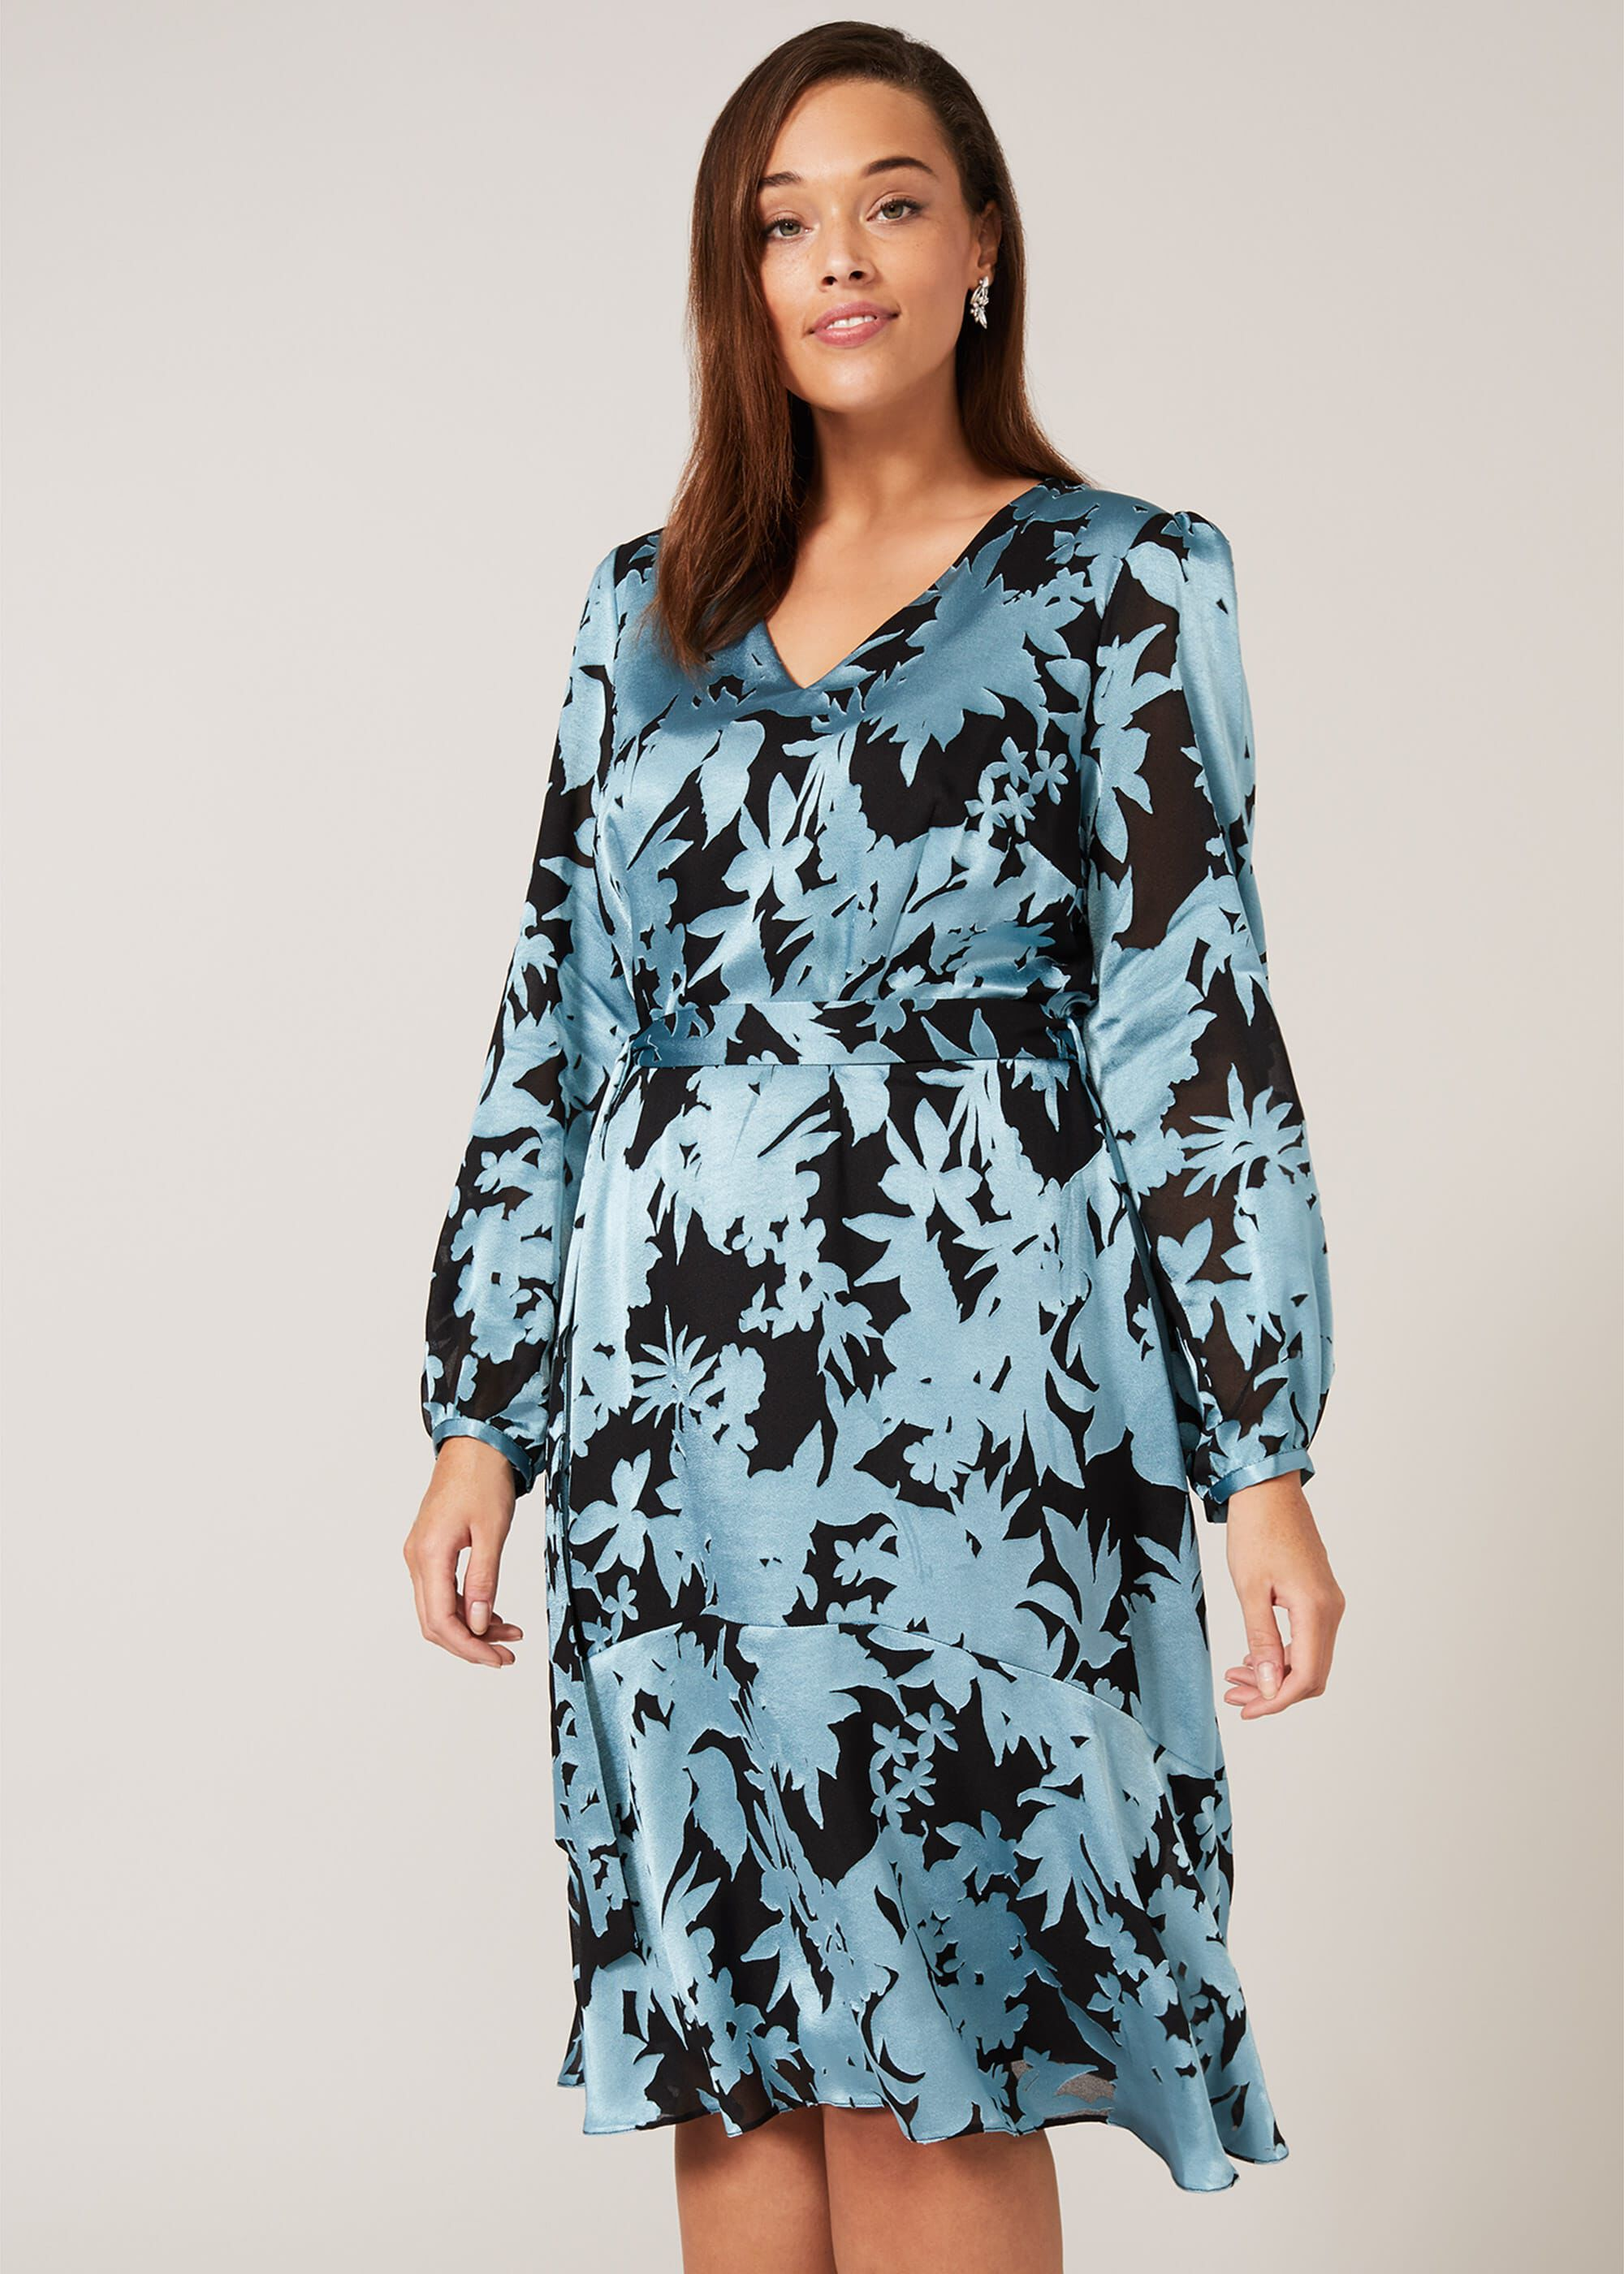 Studio 8 Mina Burnout Dress, Blue, Fit & Flare